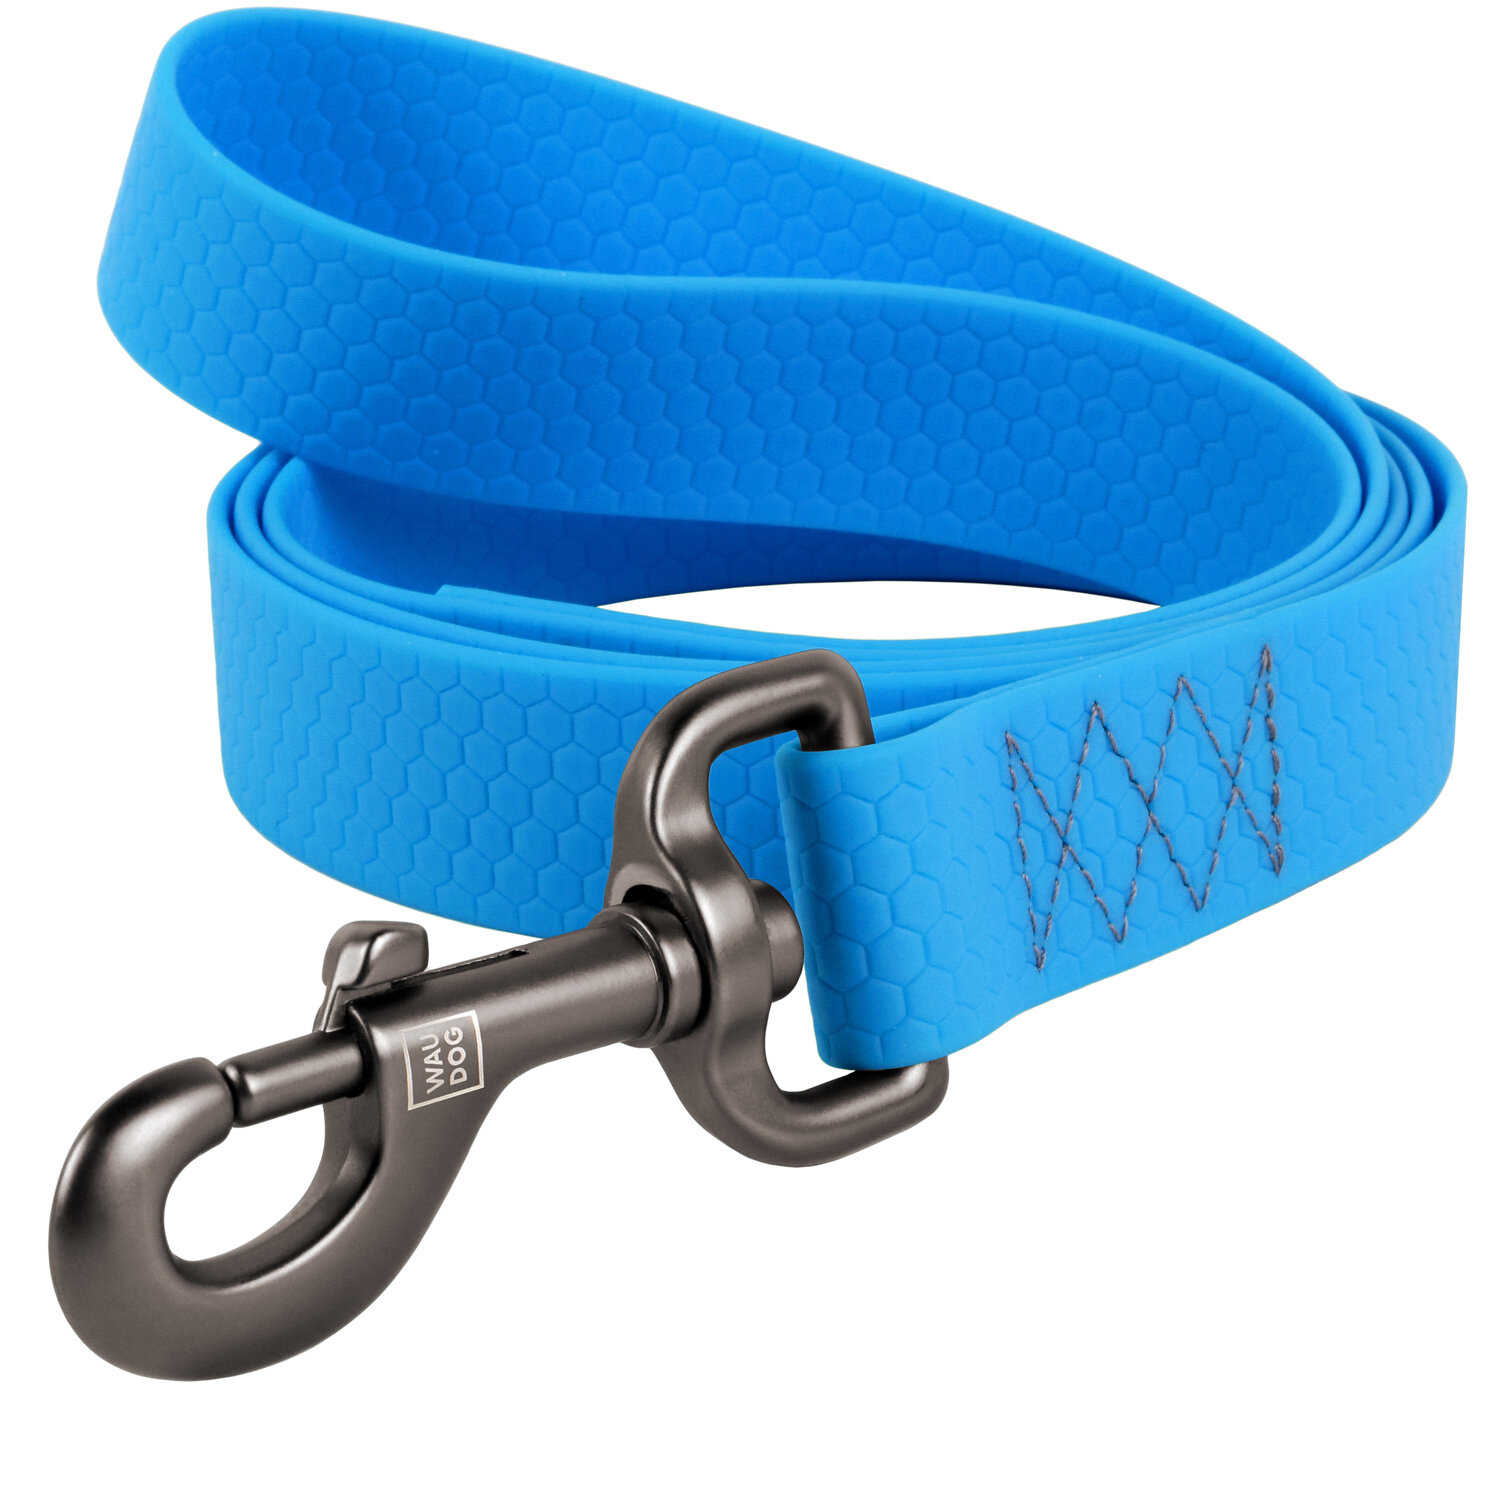 Leash WAUDOG for dogs of medium and large breeds made from waterproof COLLARTEX material, durable aluminum alloy carabiner